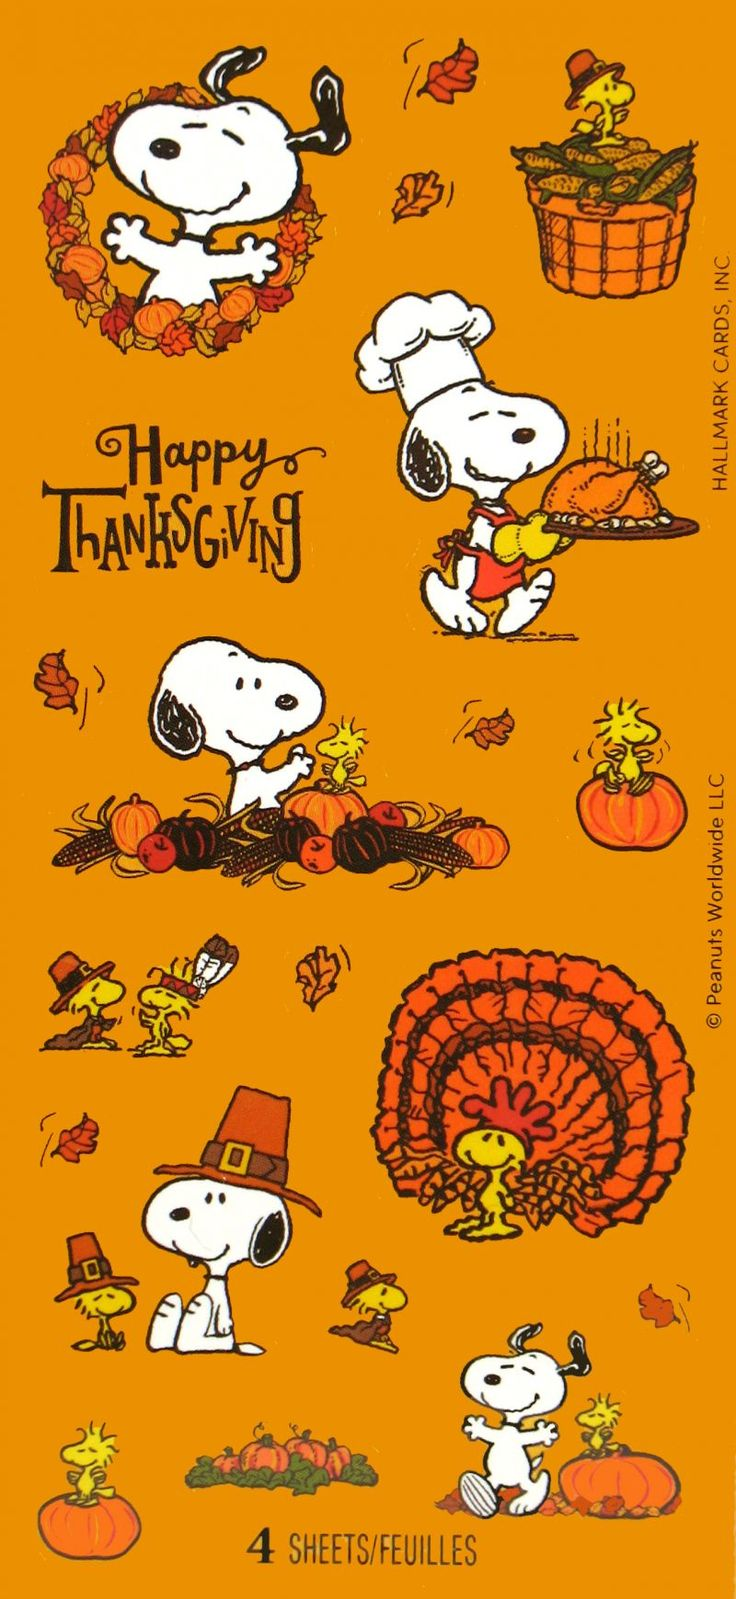 Peanut clipart happy thanksgiving Thanksgiving this Find happy Funny